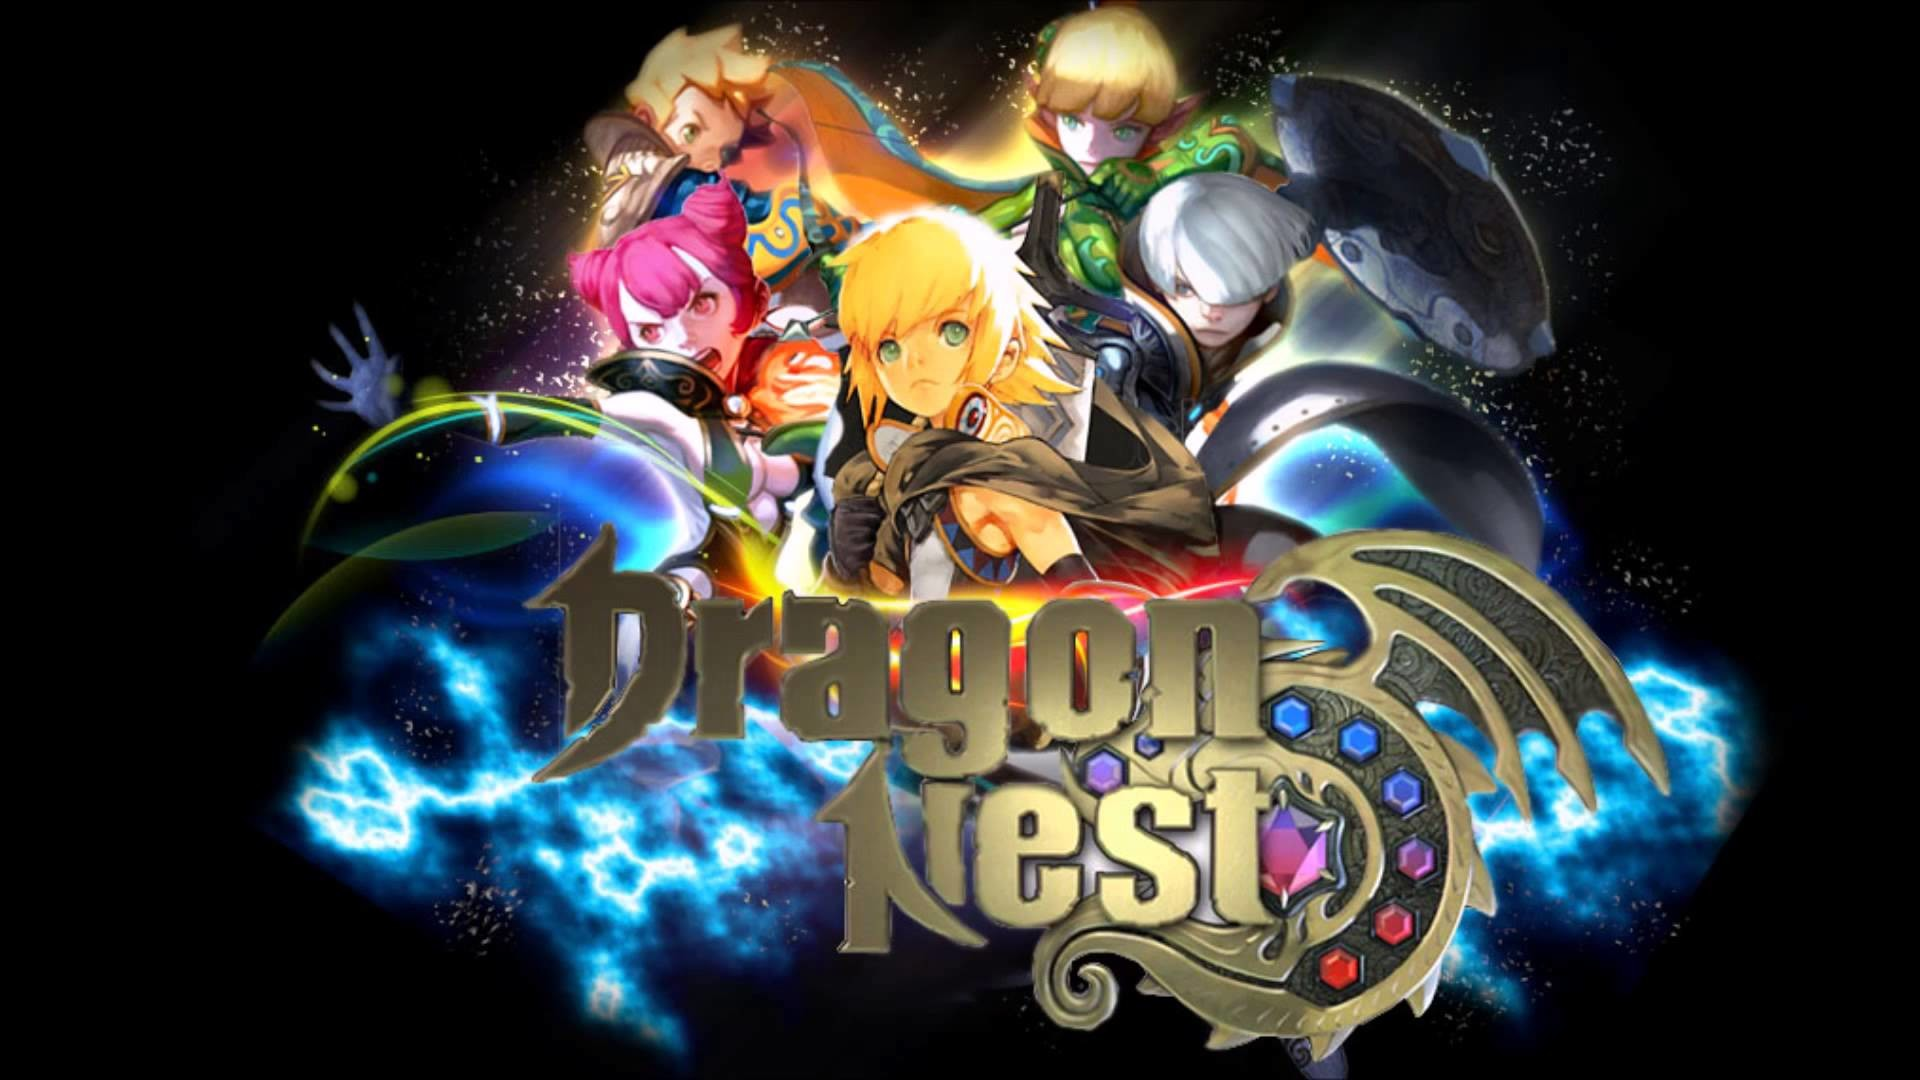 1920x1080 Dragon Nest - Level 80 Stage Battle Music 2 - YouTube